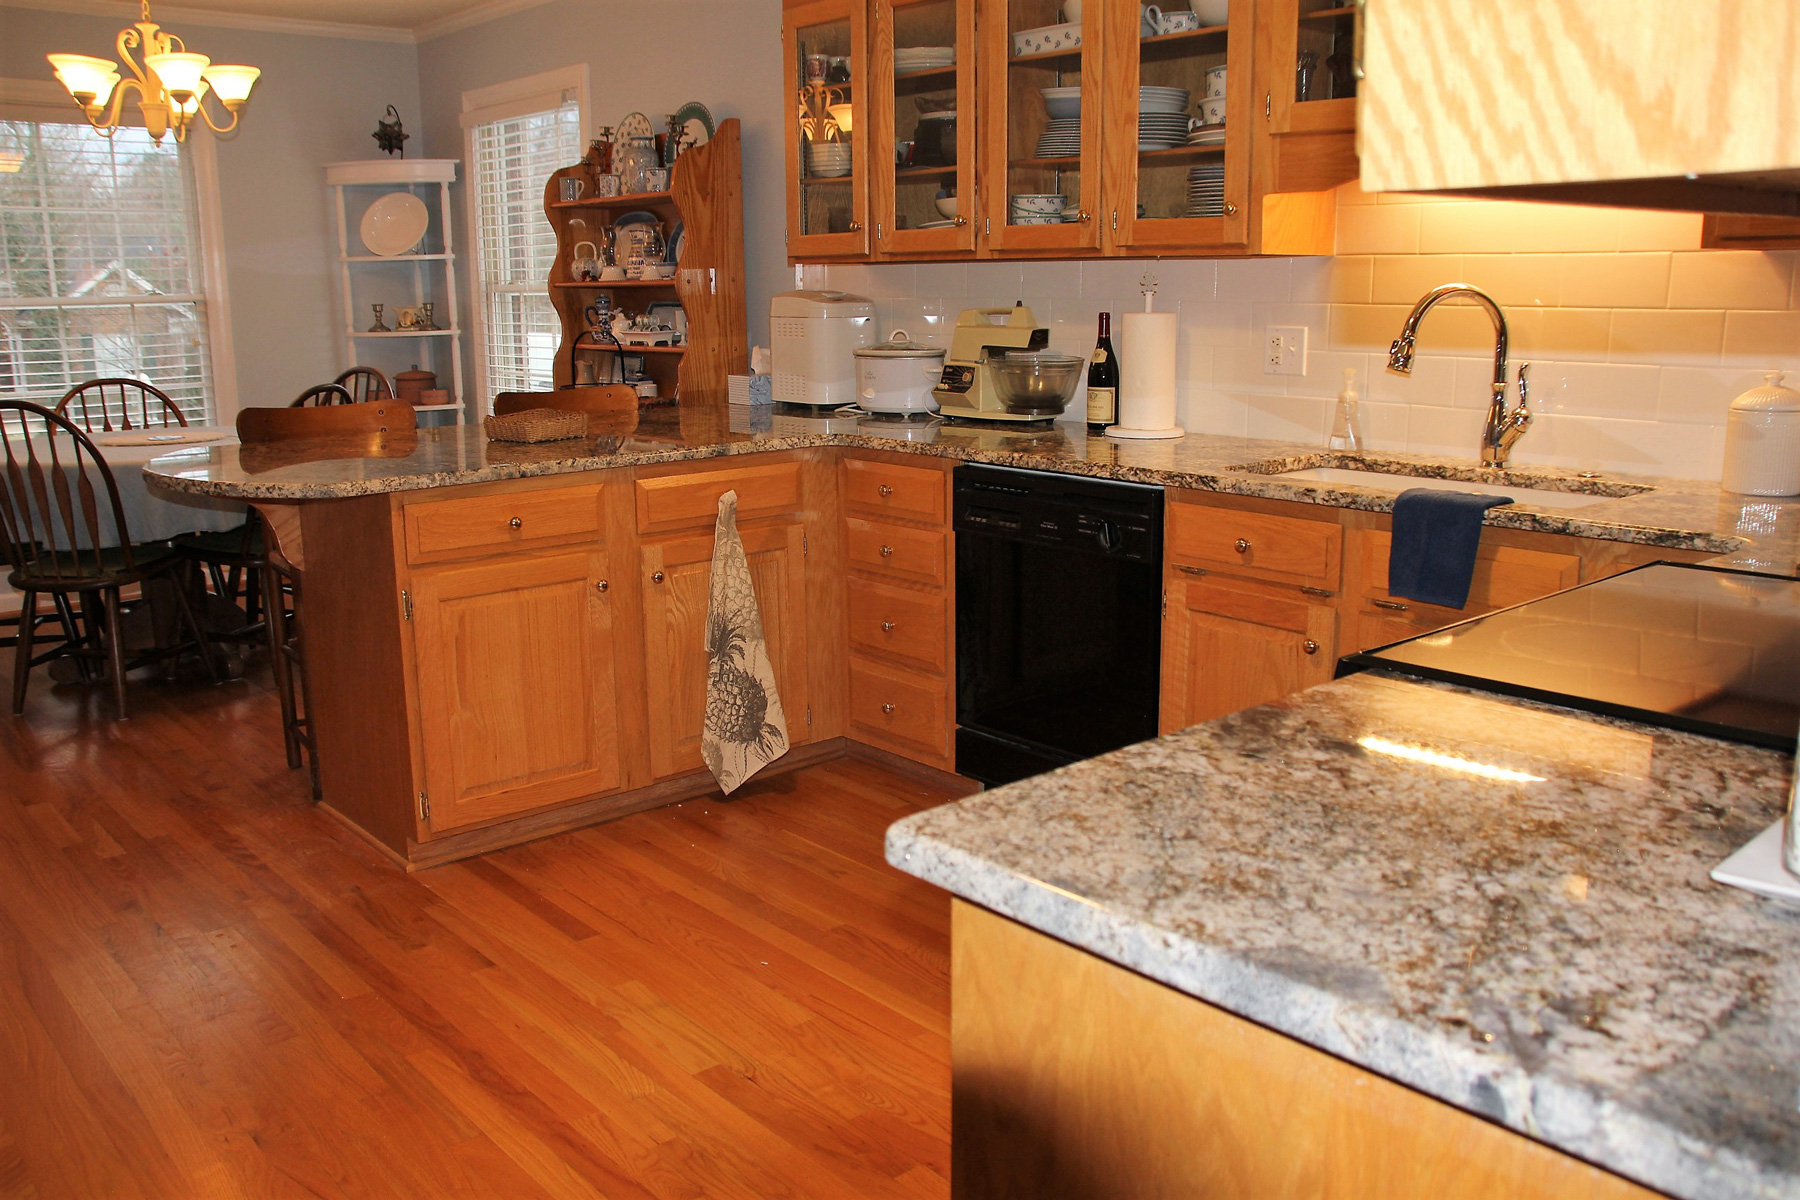 In The Kitchen, The Decision Was Made To Keep The Existing Golden Oak  Cabinets, Since They Offered Clean Lines And Sturdy Construction.